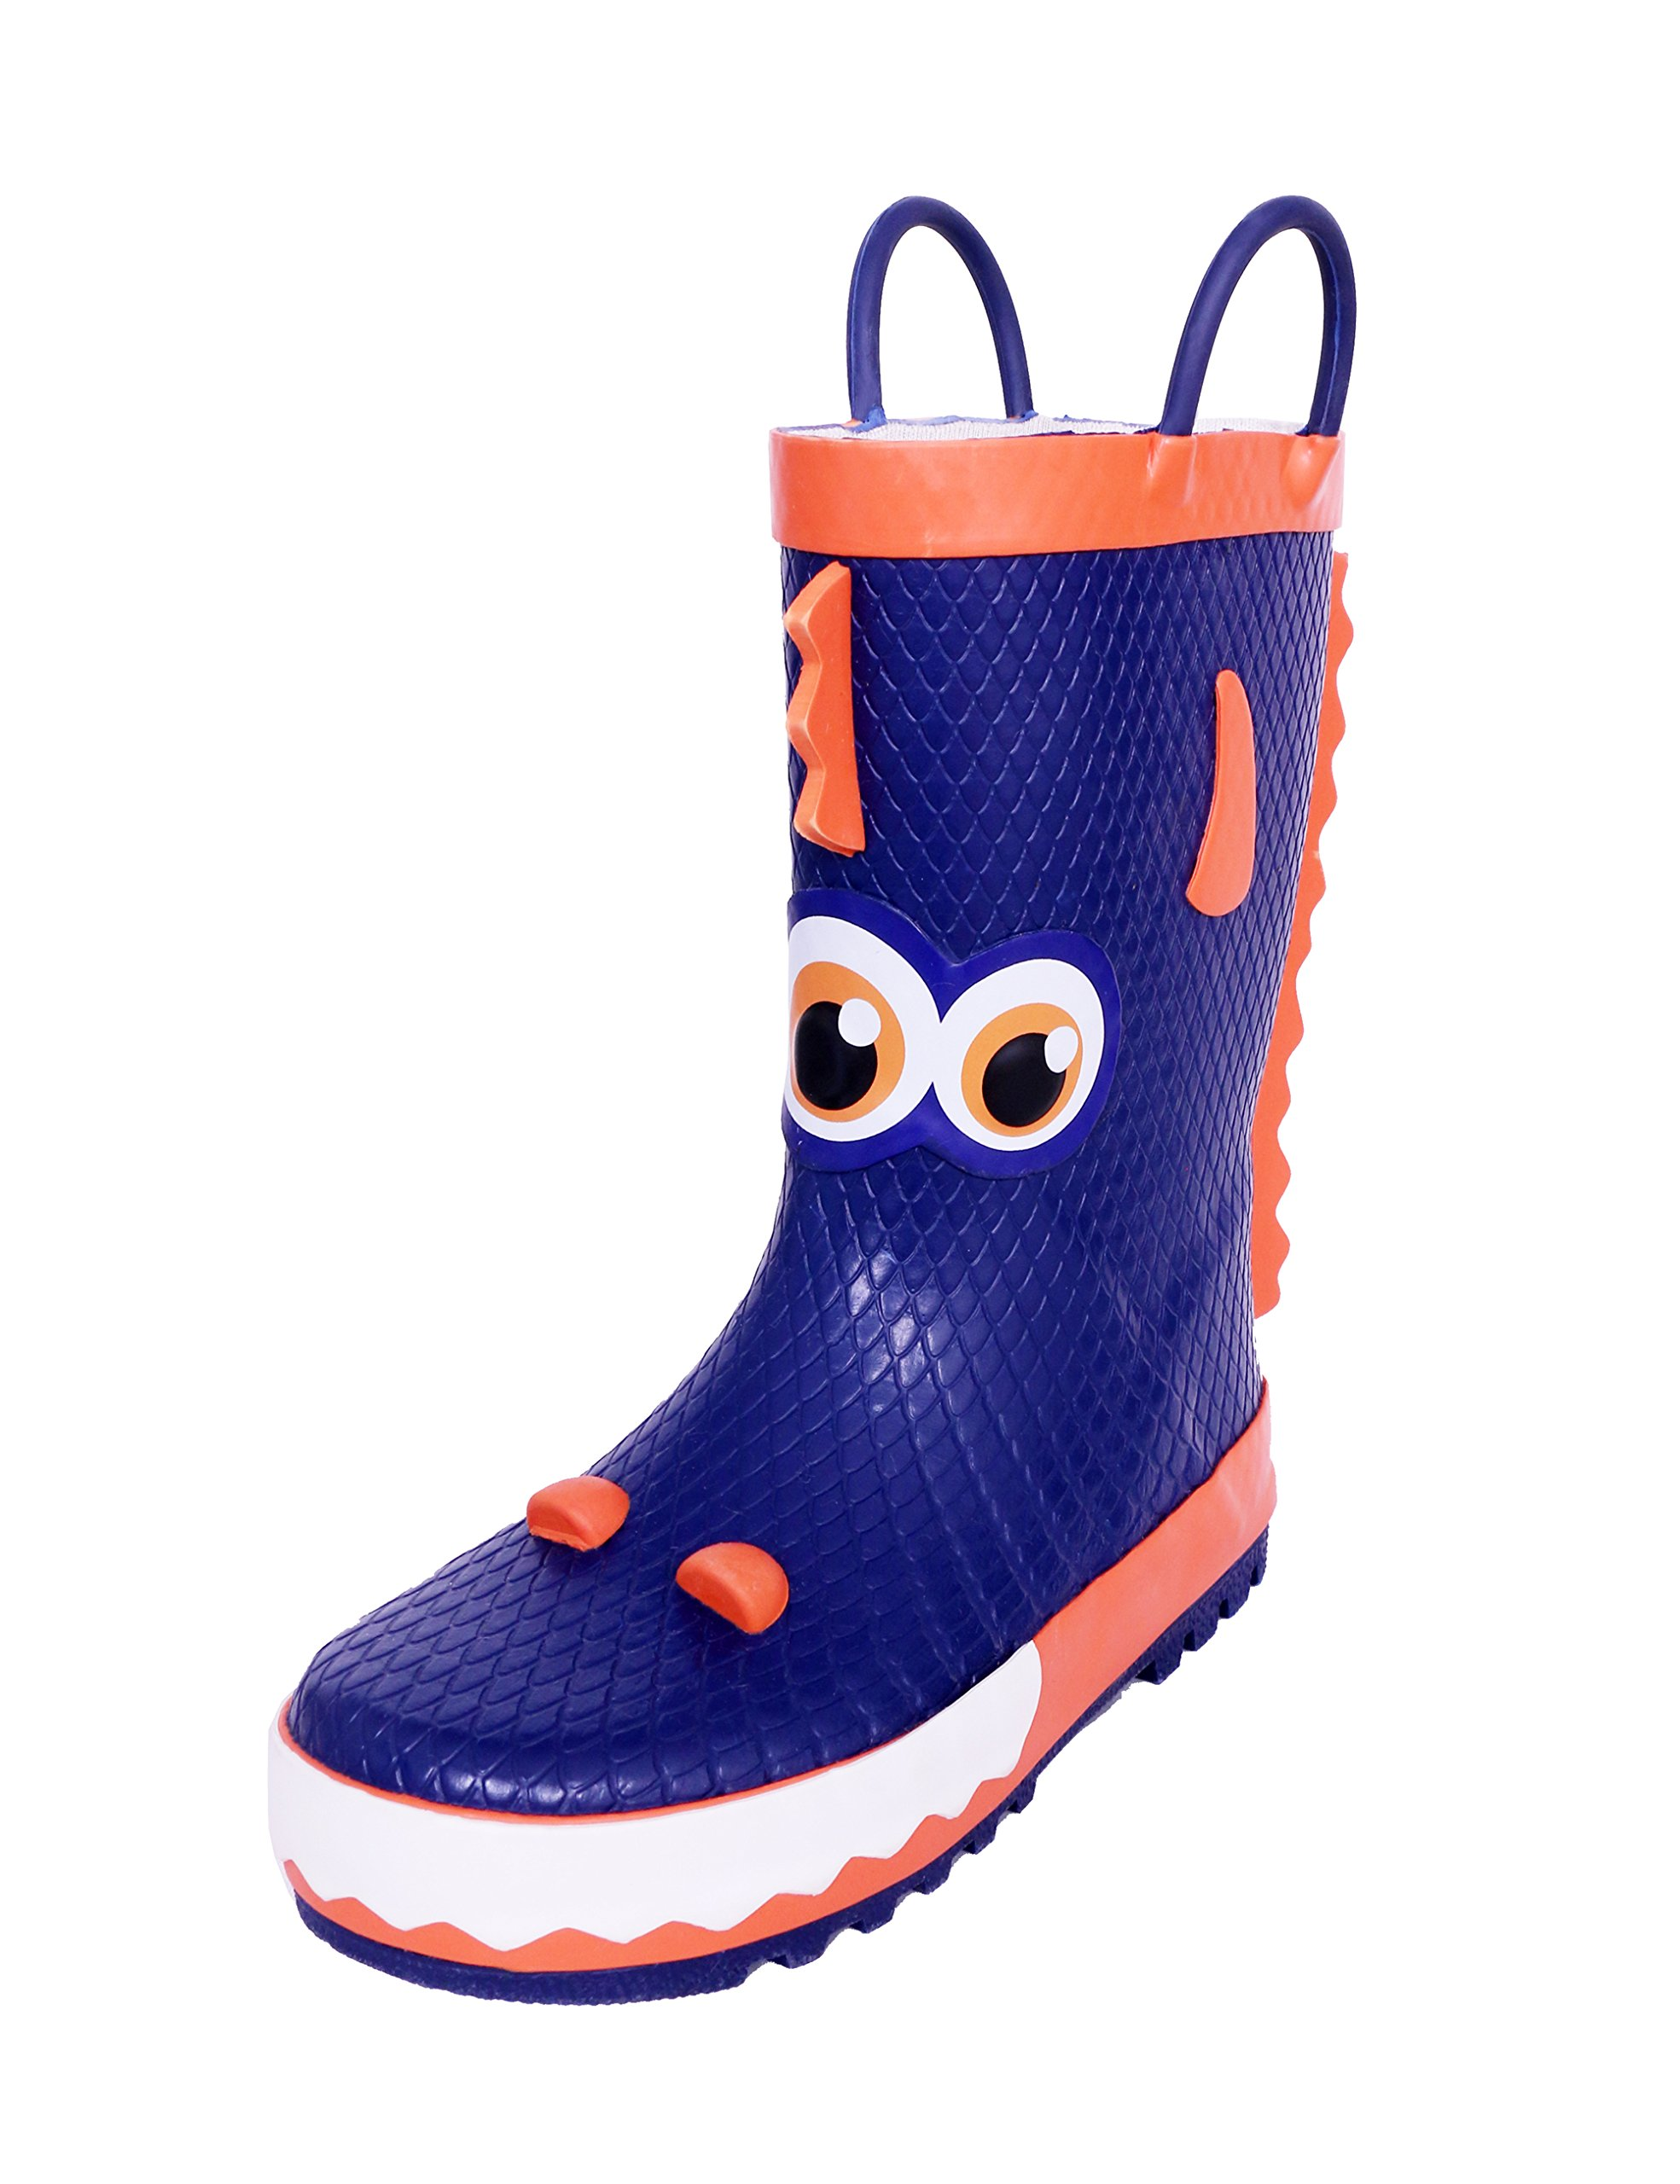 SHOFORT Kids Rainboots with Easy on Handles for Toddler Boys, Fun Prints Pattern, Size 9